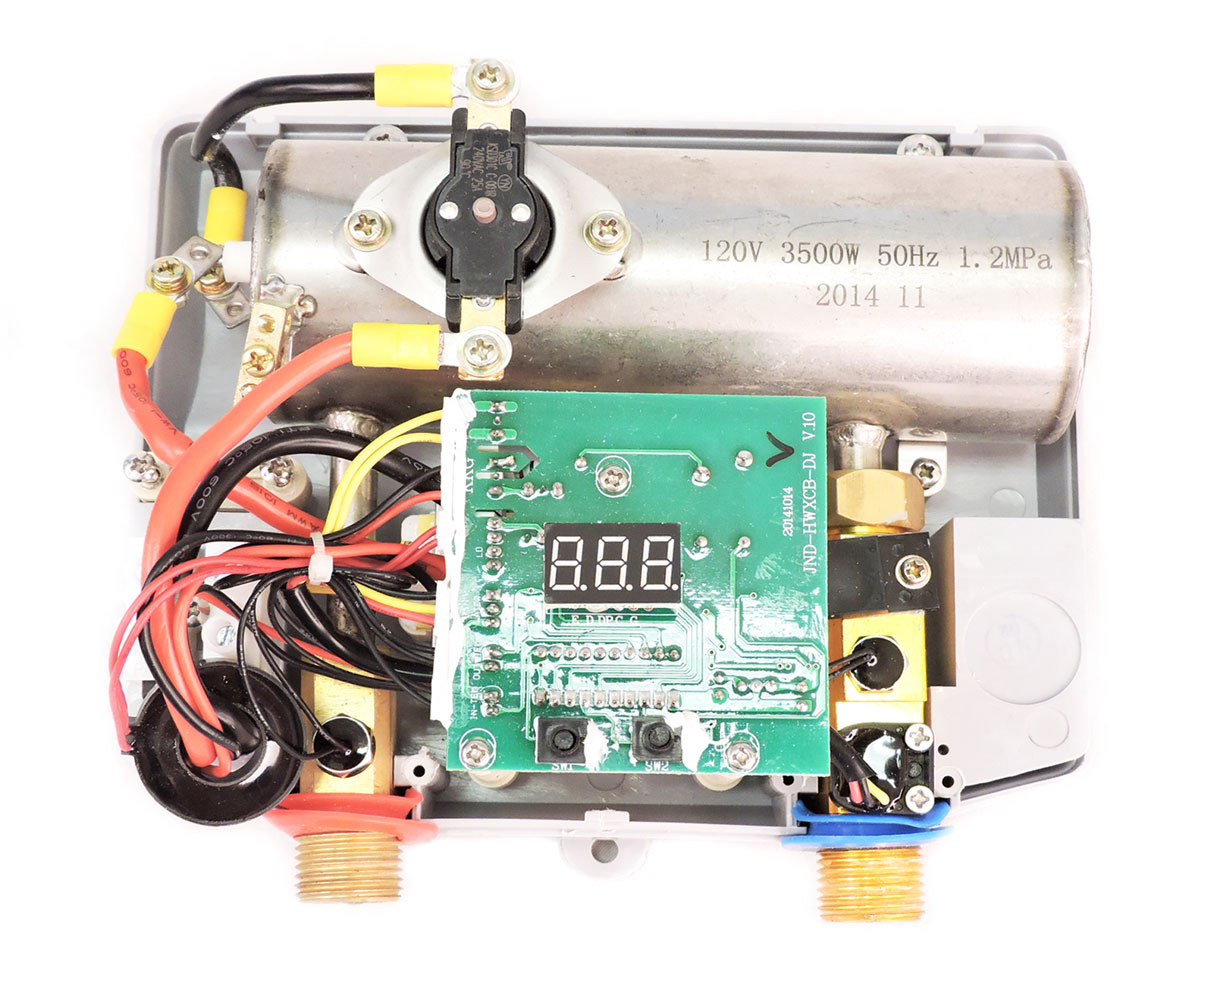 Best 110 V Electric Tankless Marey Eco035 Pou Water Heater